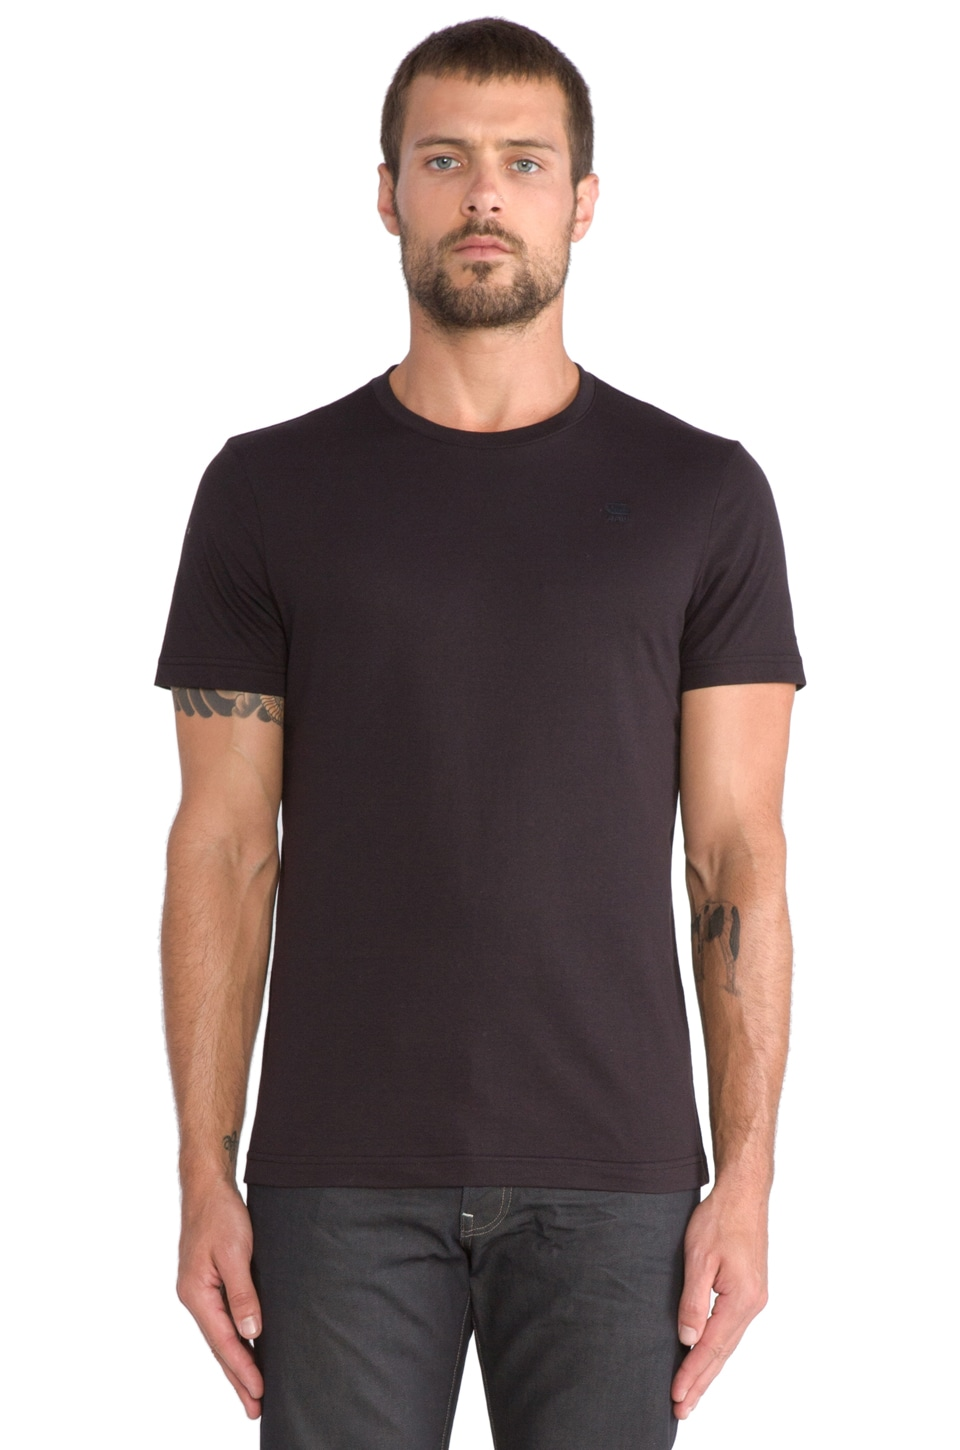 G-Star Double Pack Short Sleeve Crew in Solid Black